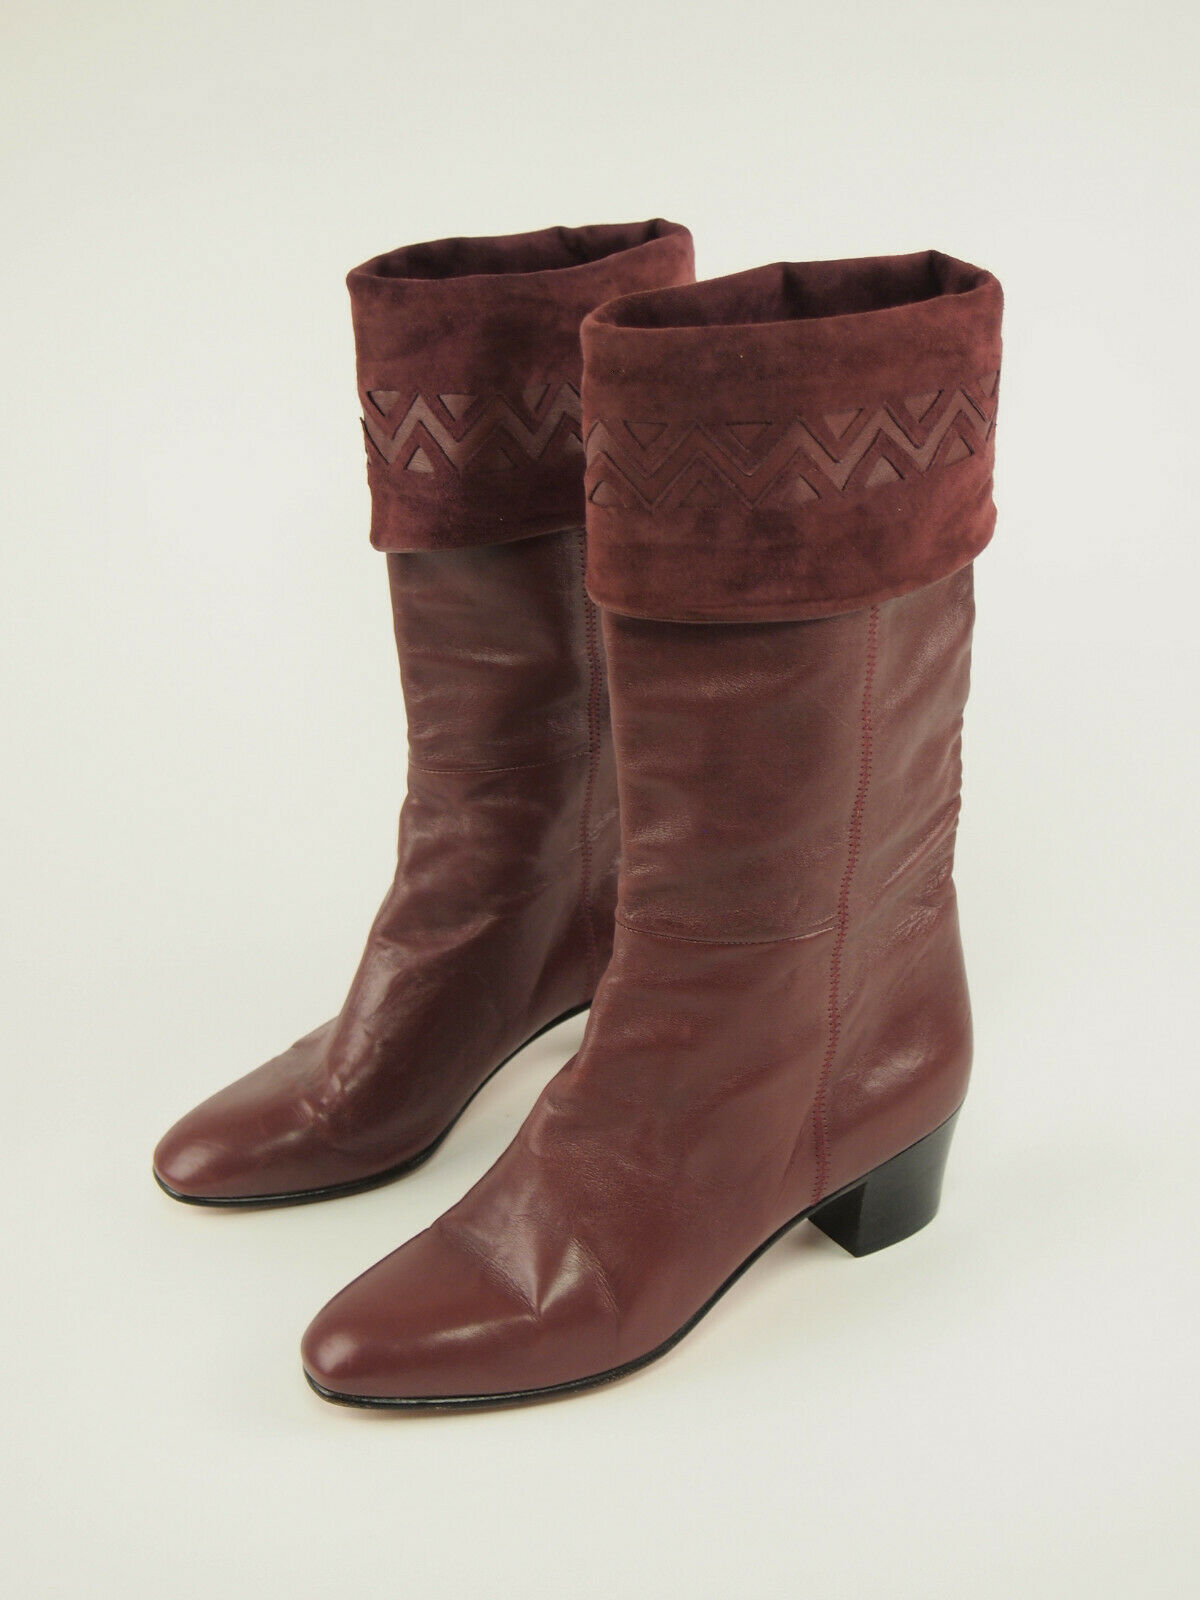 New  RAFFAEL Vintage 80s Cordovan Riding Cuff Boots 39 - US 7.5